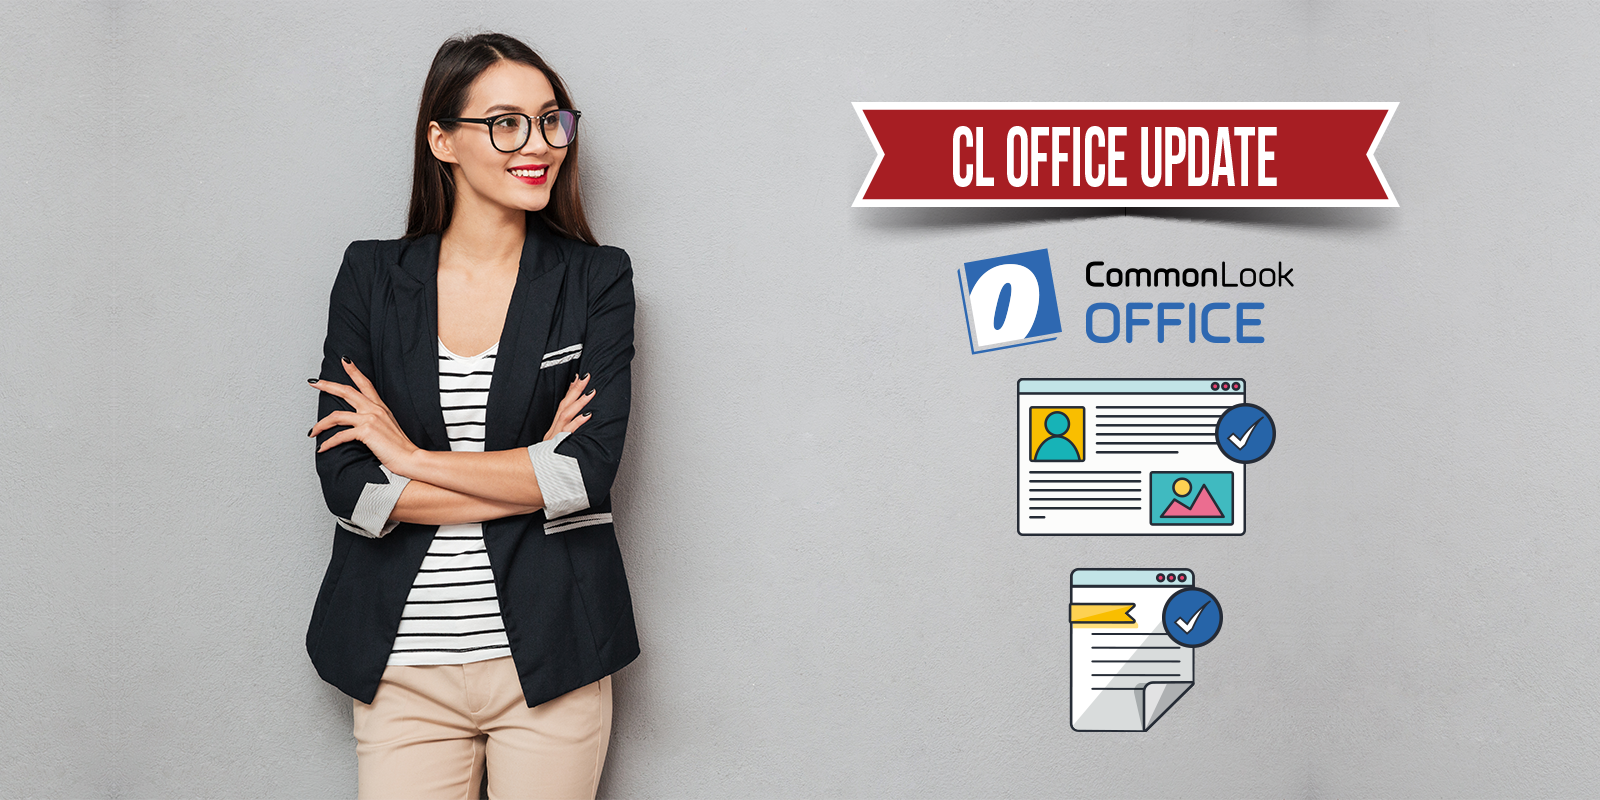 "Smiling young Asian woman with glasses looks to her left at a banner that says ""CL Office Update"" followed by the CommonLook Office logo with illustrations of a PowerPoint slide and a Word document."